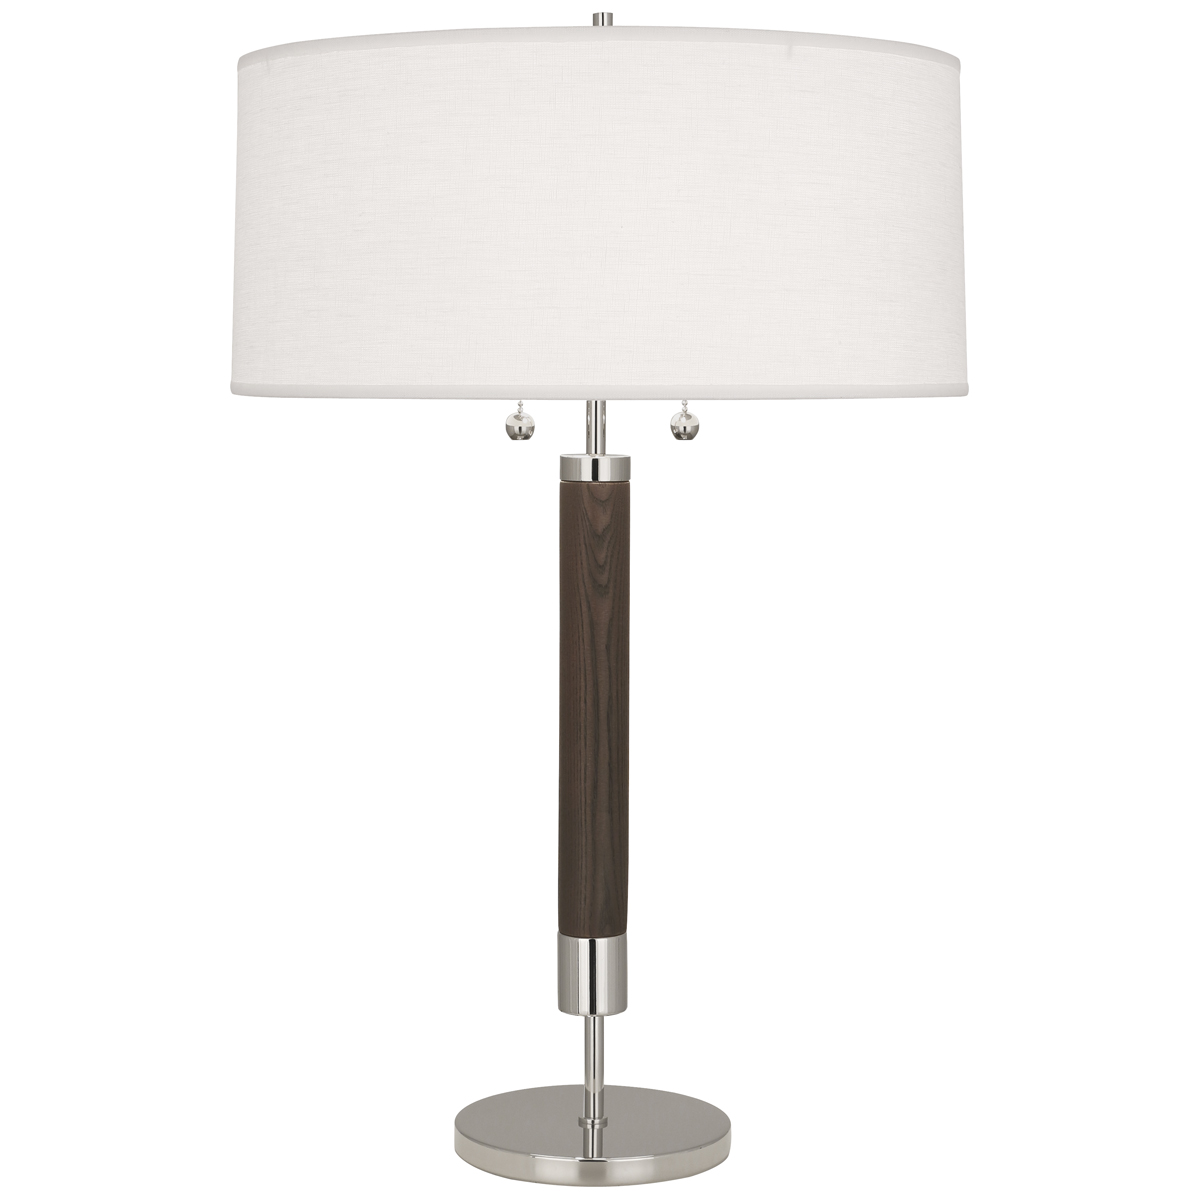 Dexter Table Lamp Style #S205